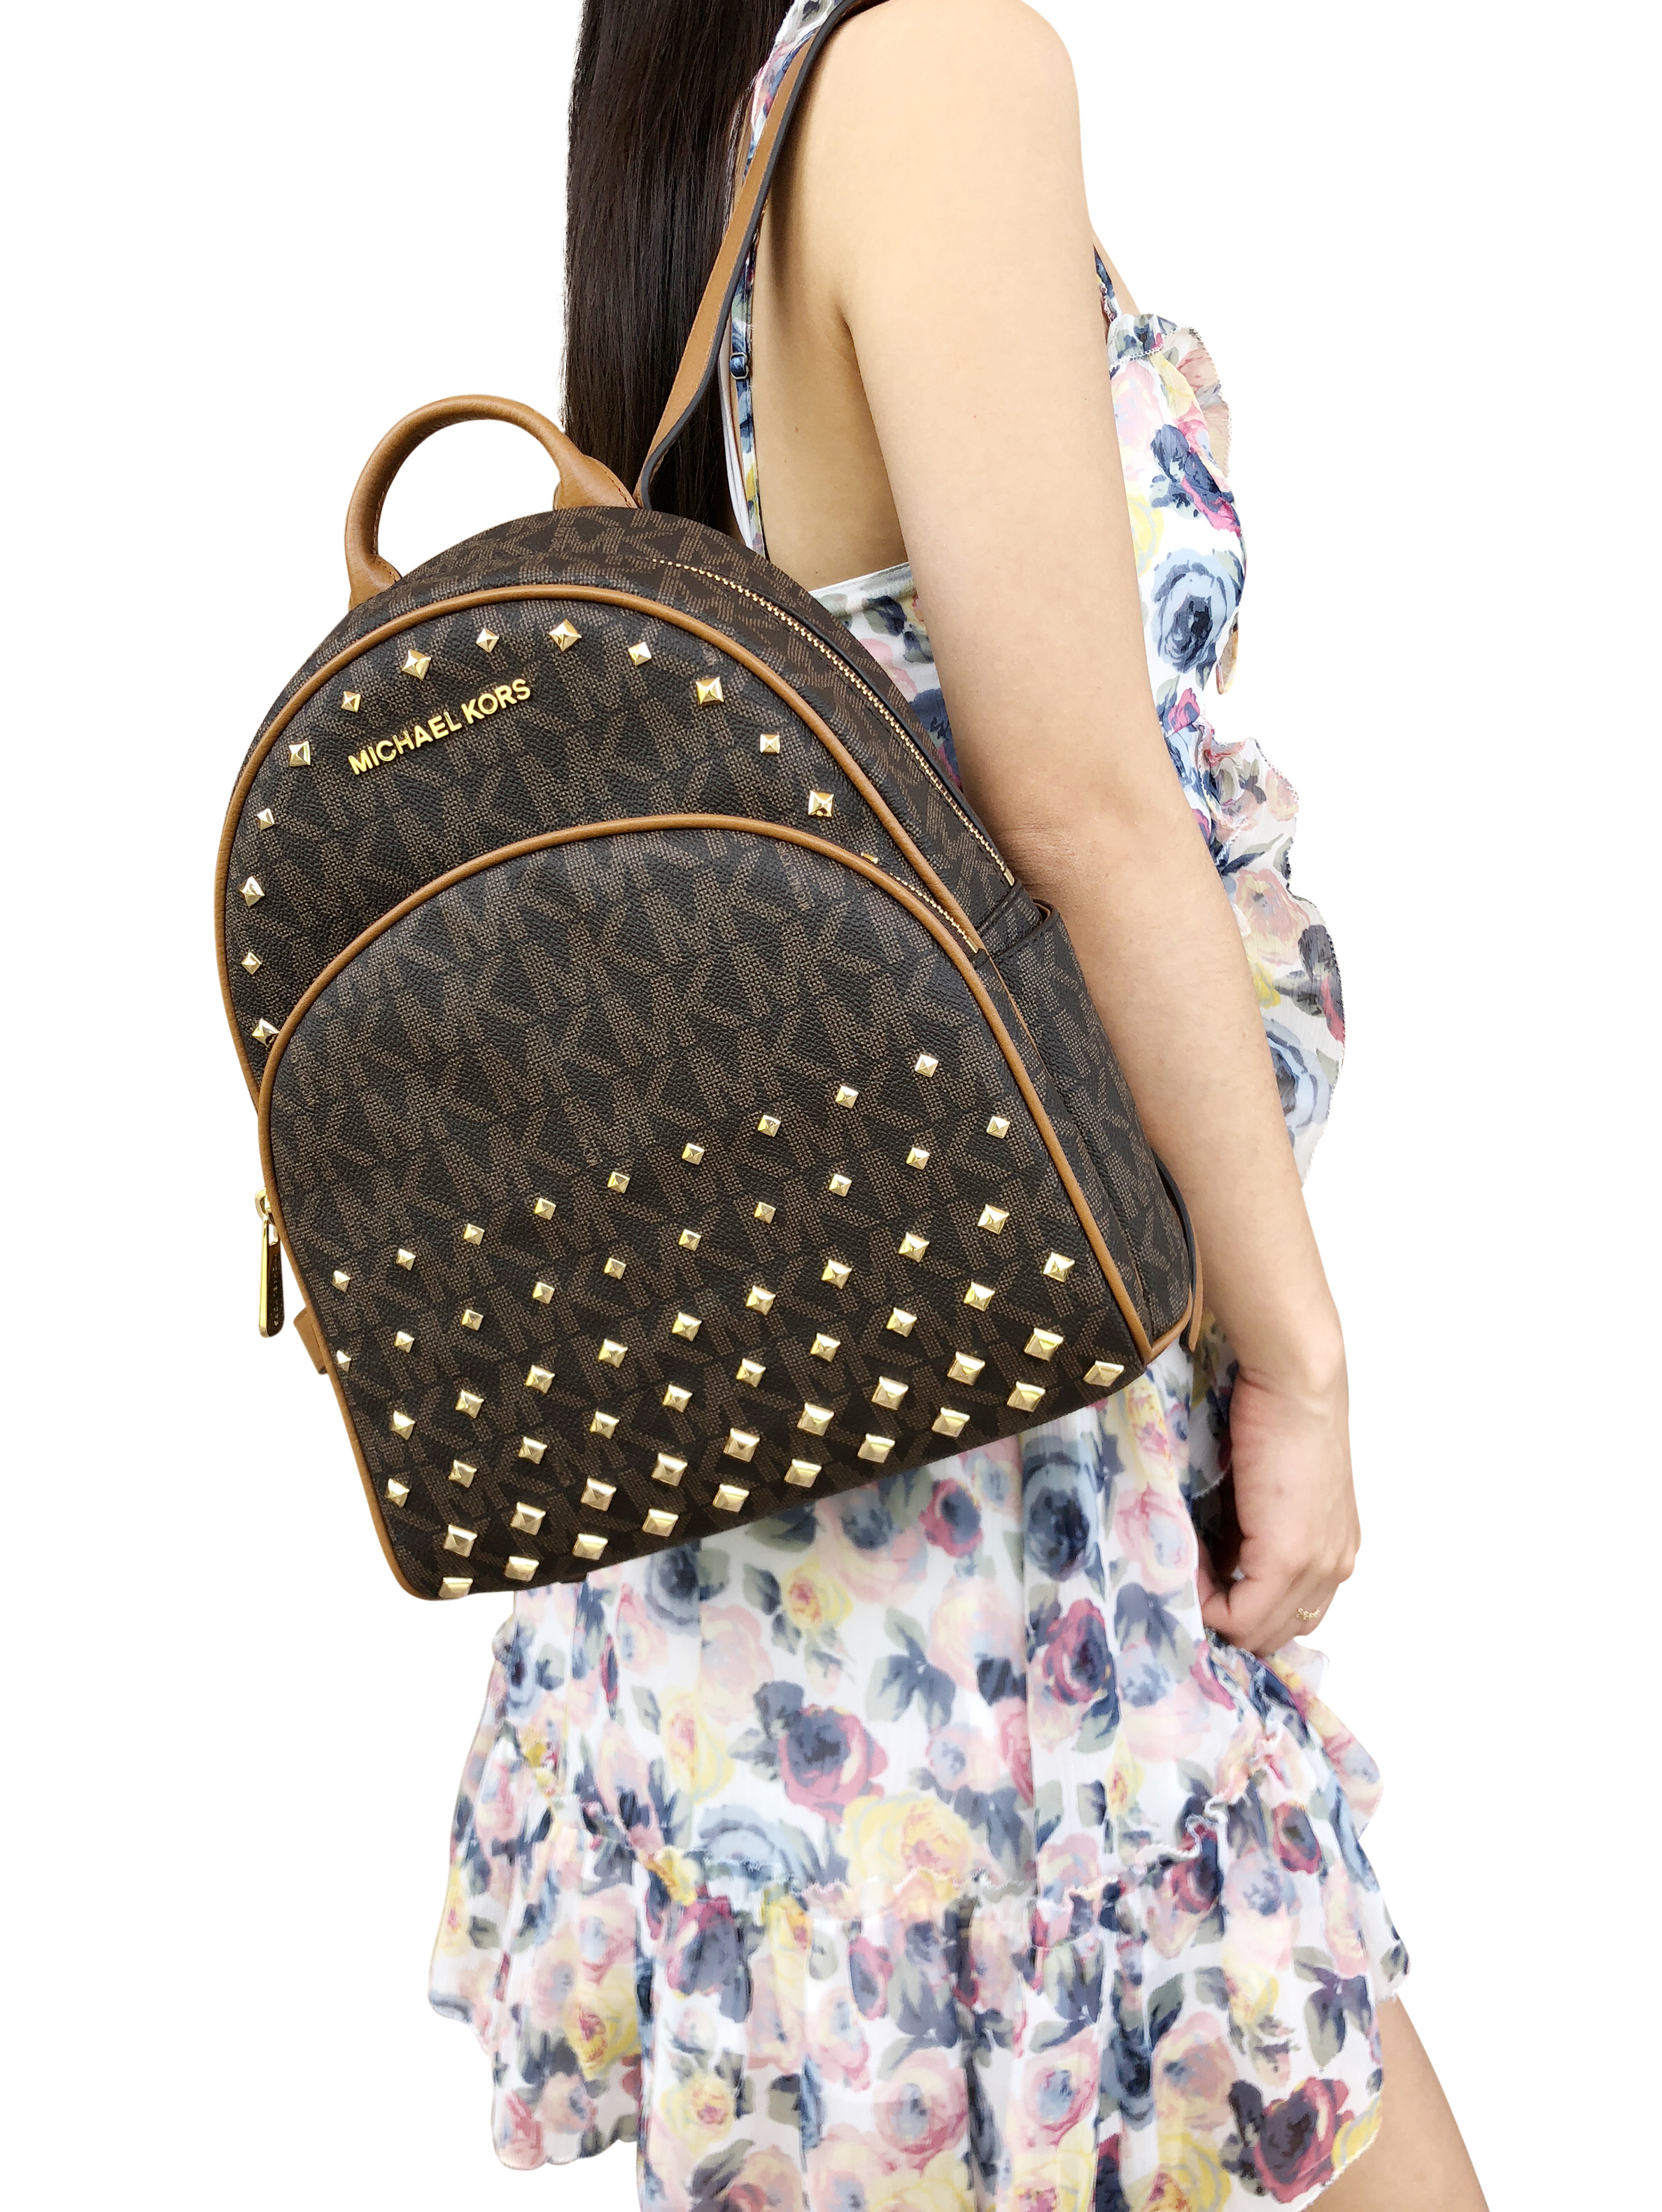 Abbey Medium Backpack Brown MK Signature Stud Acorn